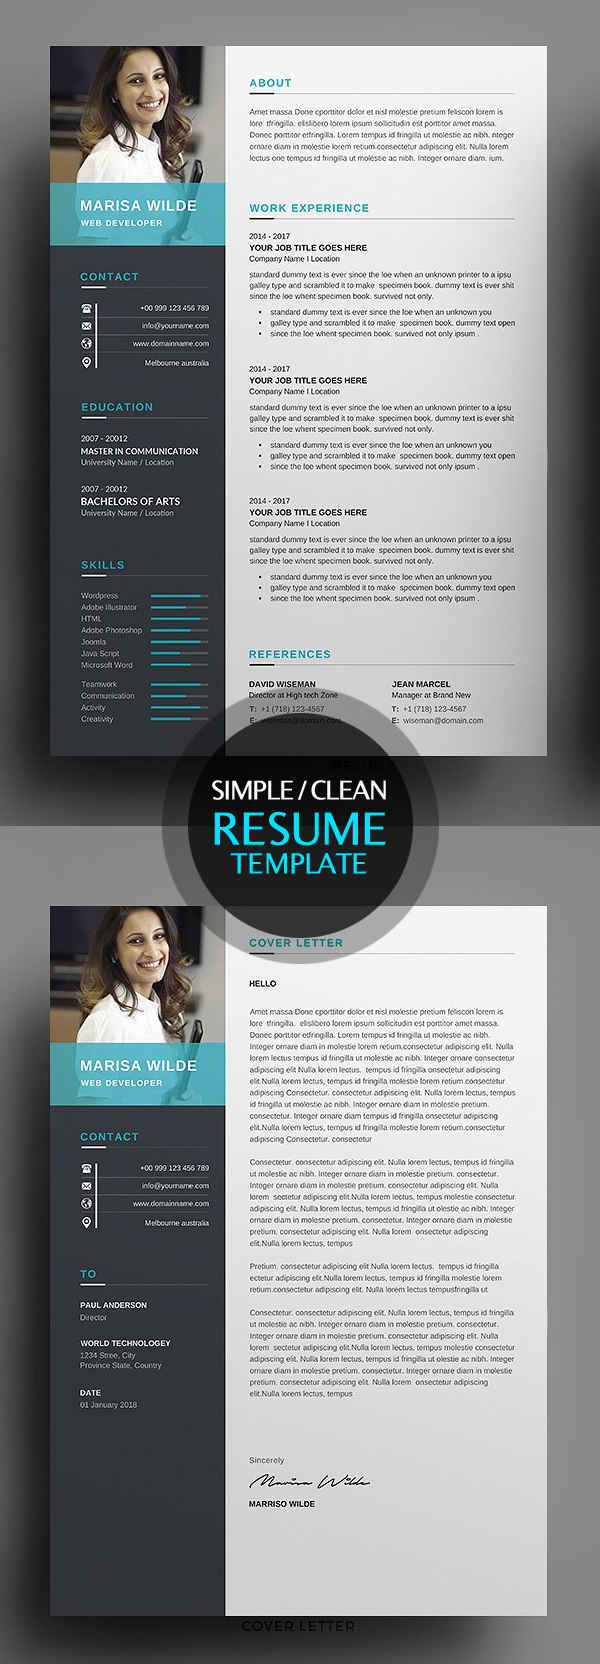 Clean Resume CV Template 2018